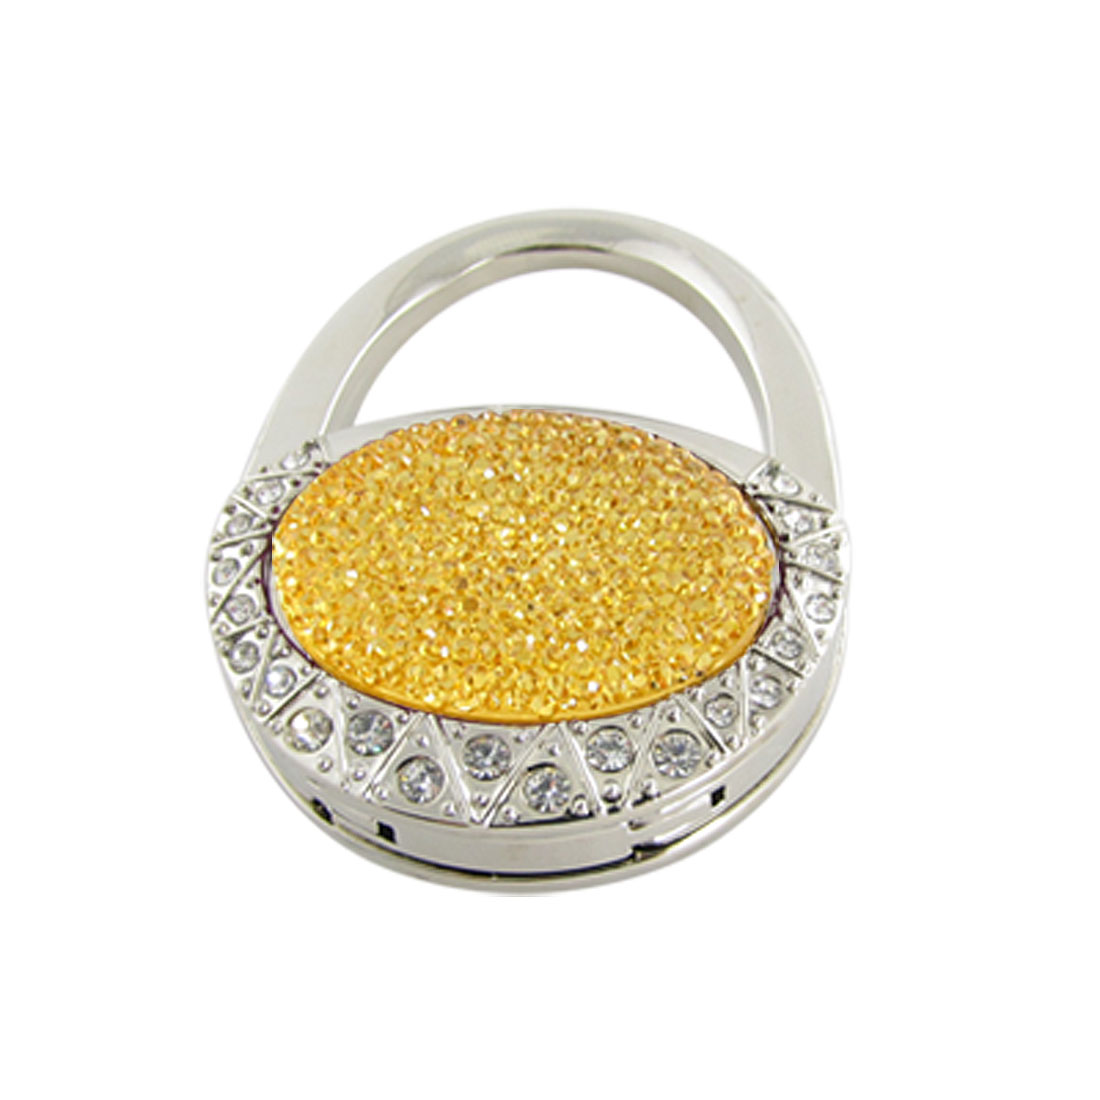 Antislip Rubber Base Yellow Crystal Inlaid Hangbag Hook